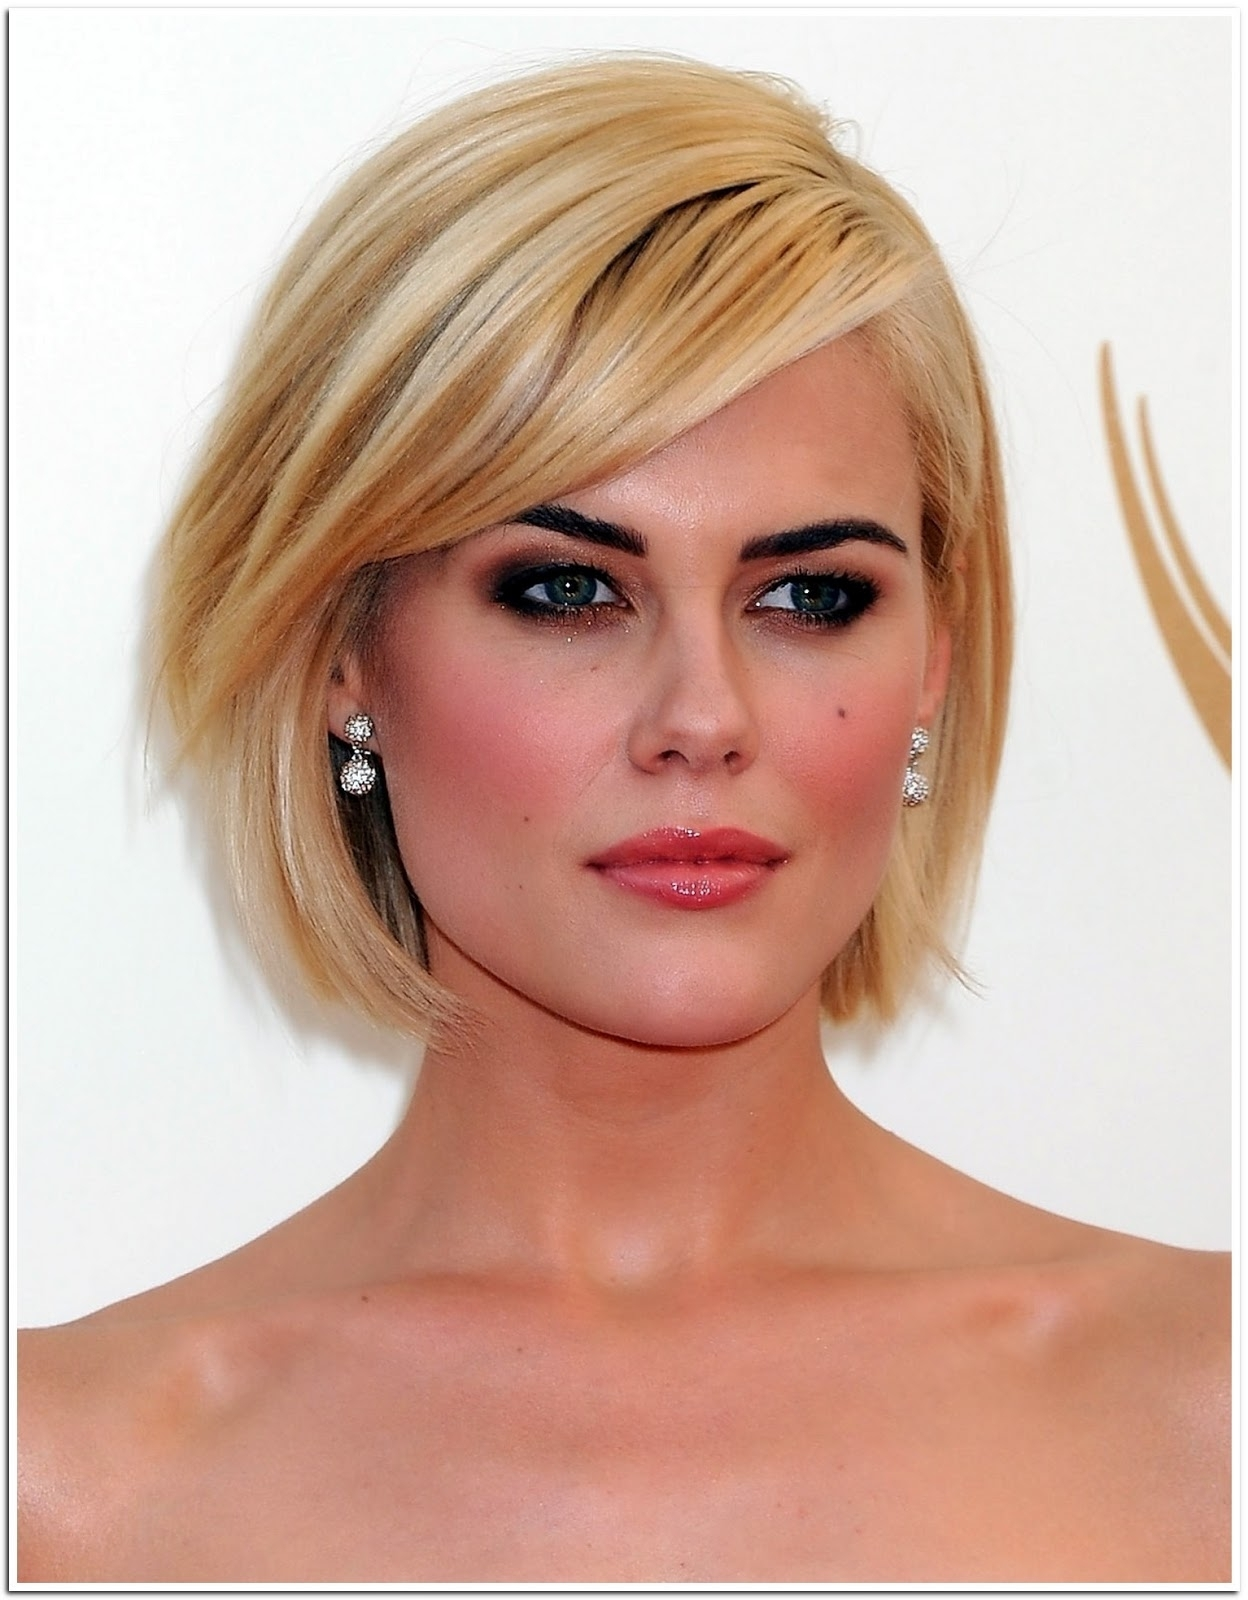 12 Formal Hairstyles For Short Hair You Can't Do Without Inside Newest Pixie Hairstyles Without Bangs (View 9 of 15)